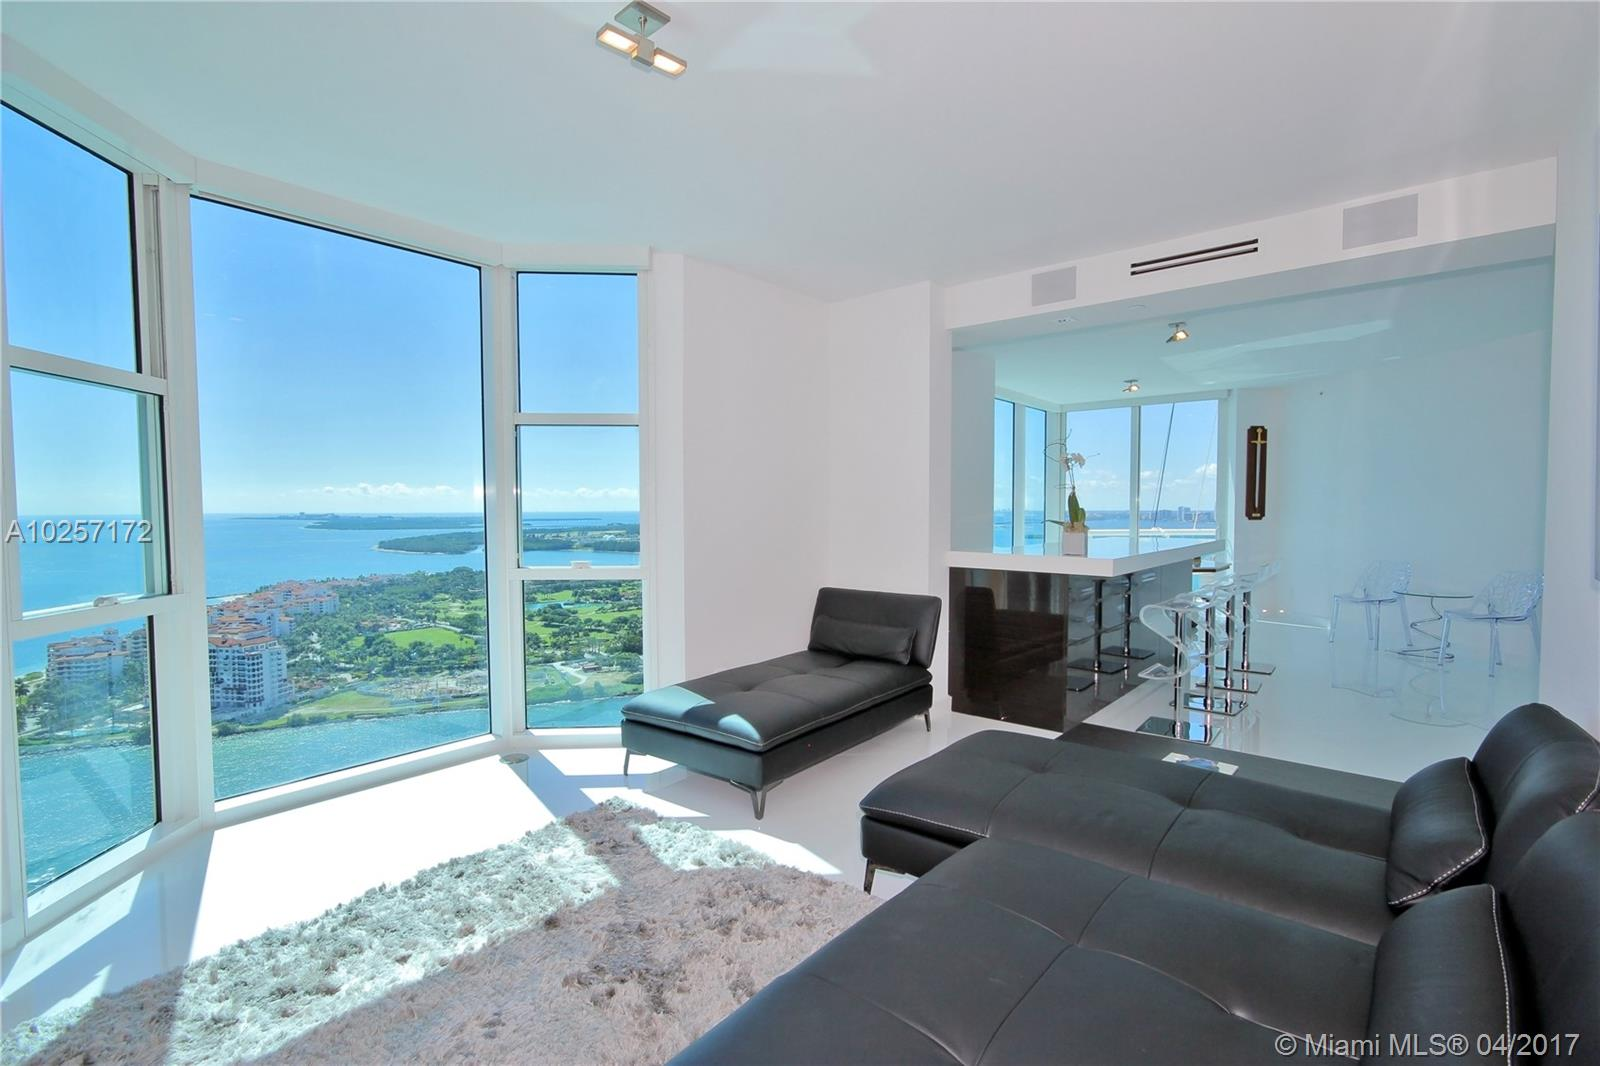 300 Pointe dr-LPH2 miami-beach--fl-33139-a10257172-Pic06